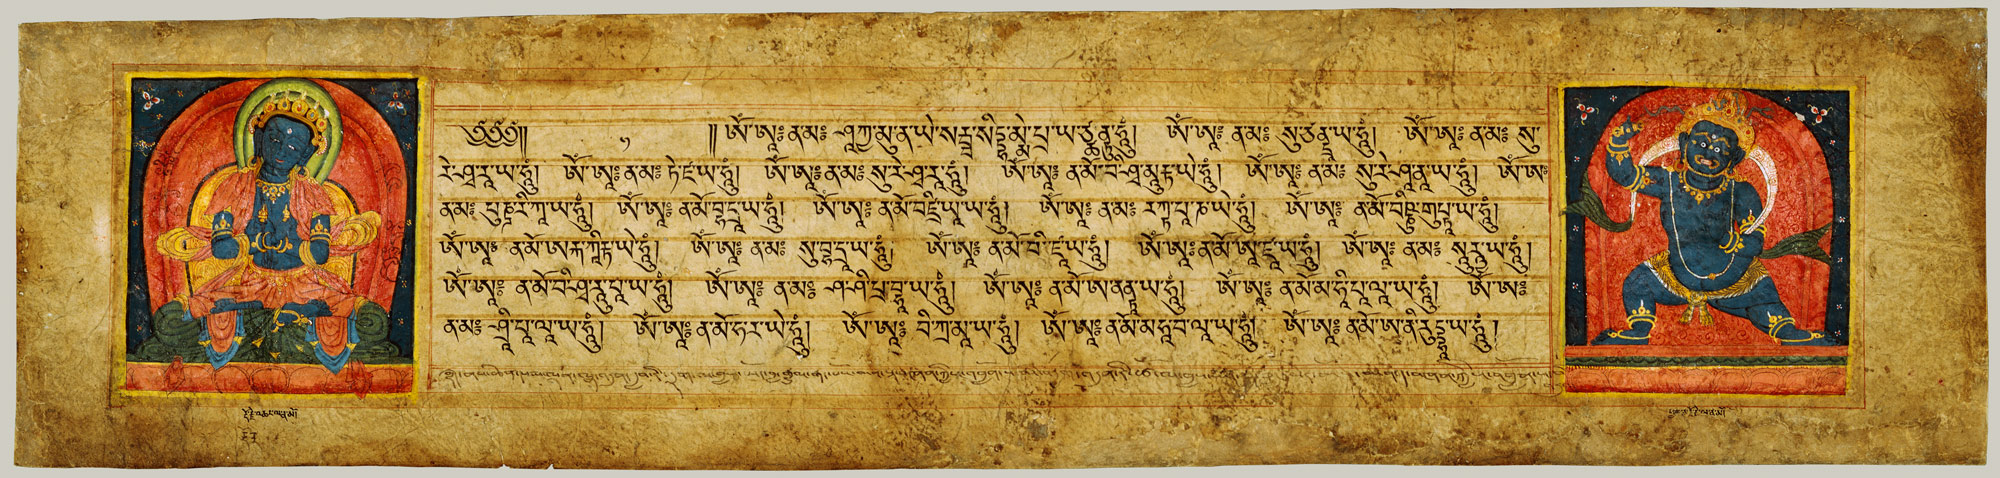 Illuminated pages from a dispersed Dharani manuscript